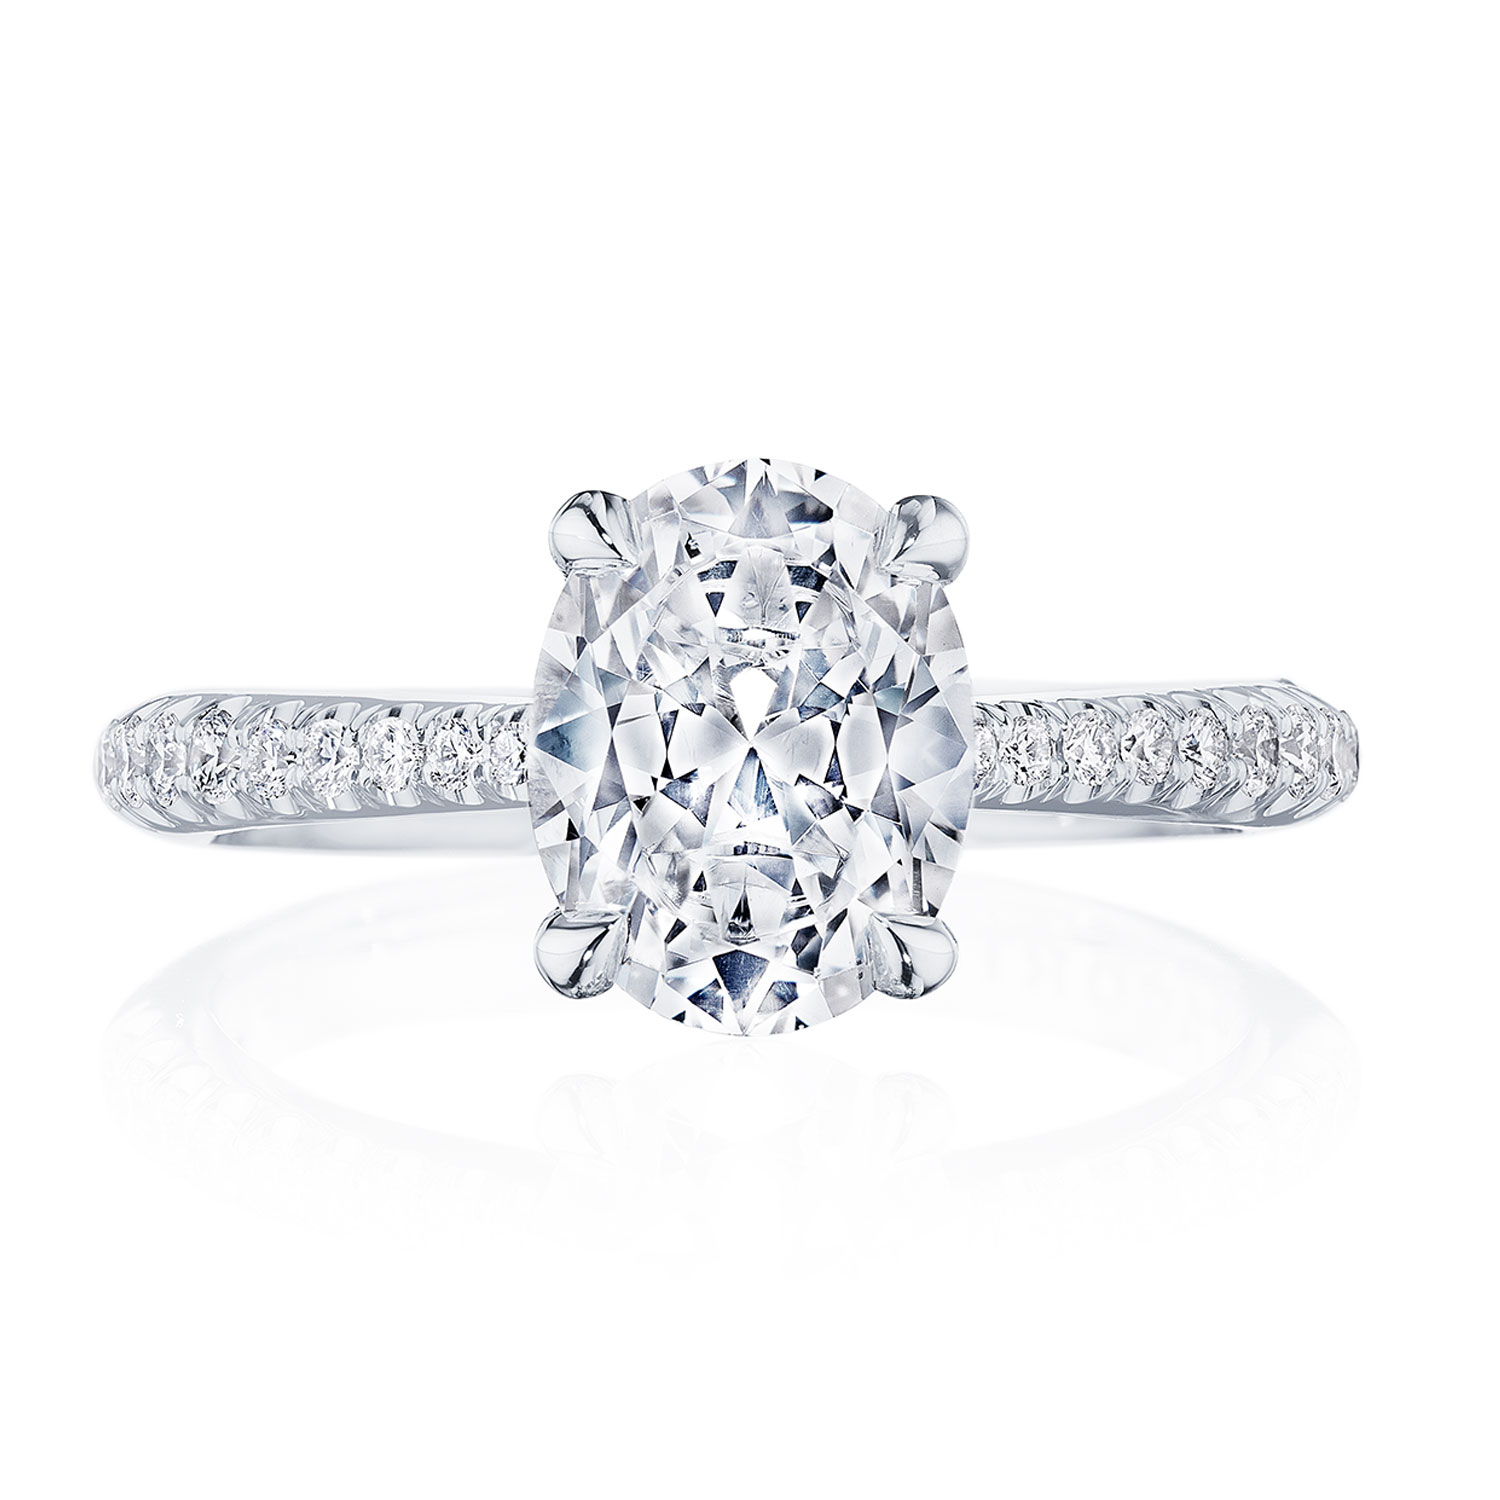 Tacori Settings – Engagement Rings Intended For Latest Classic Sparkle Halo Rings (View 19 of 25)